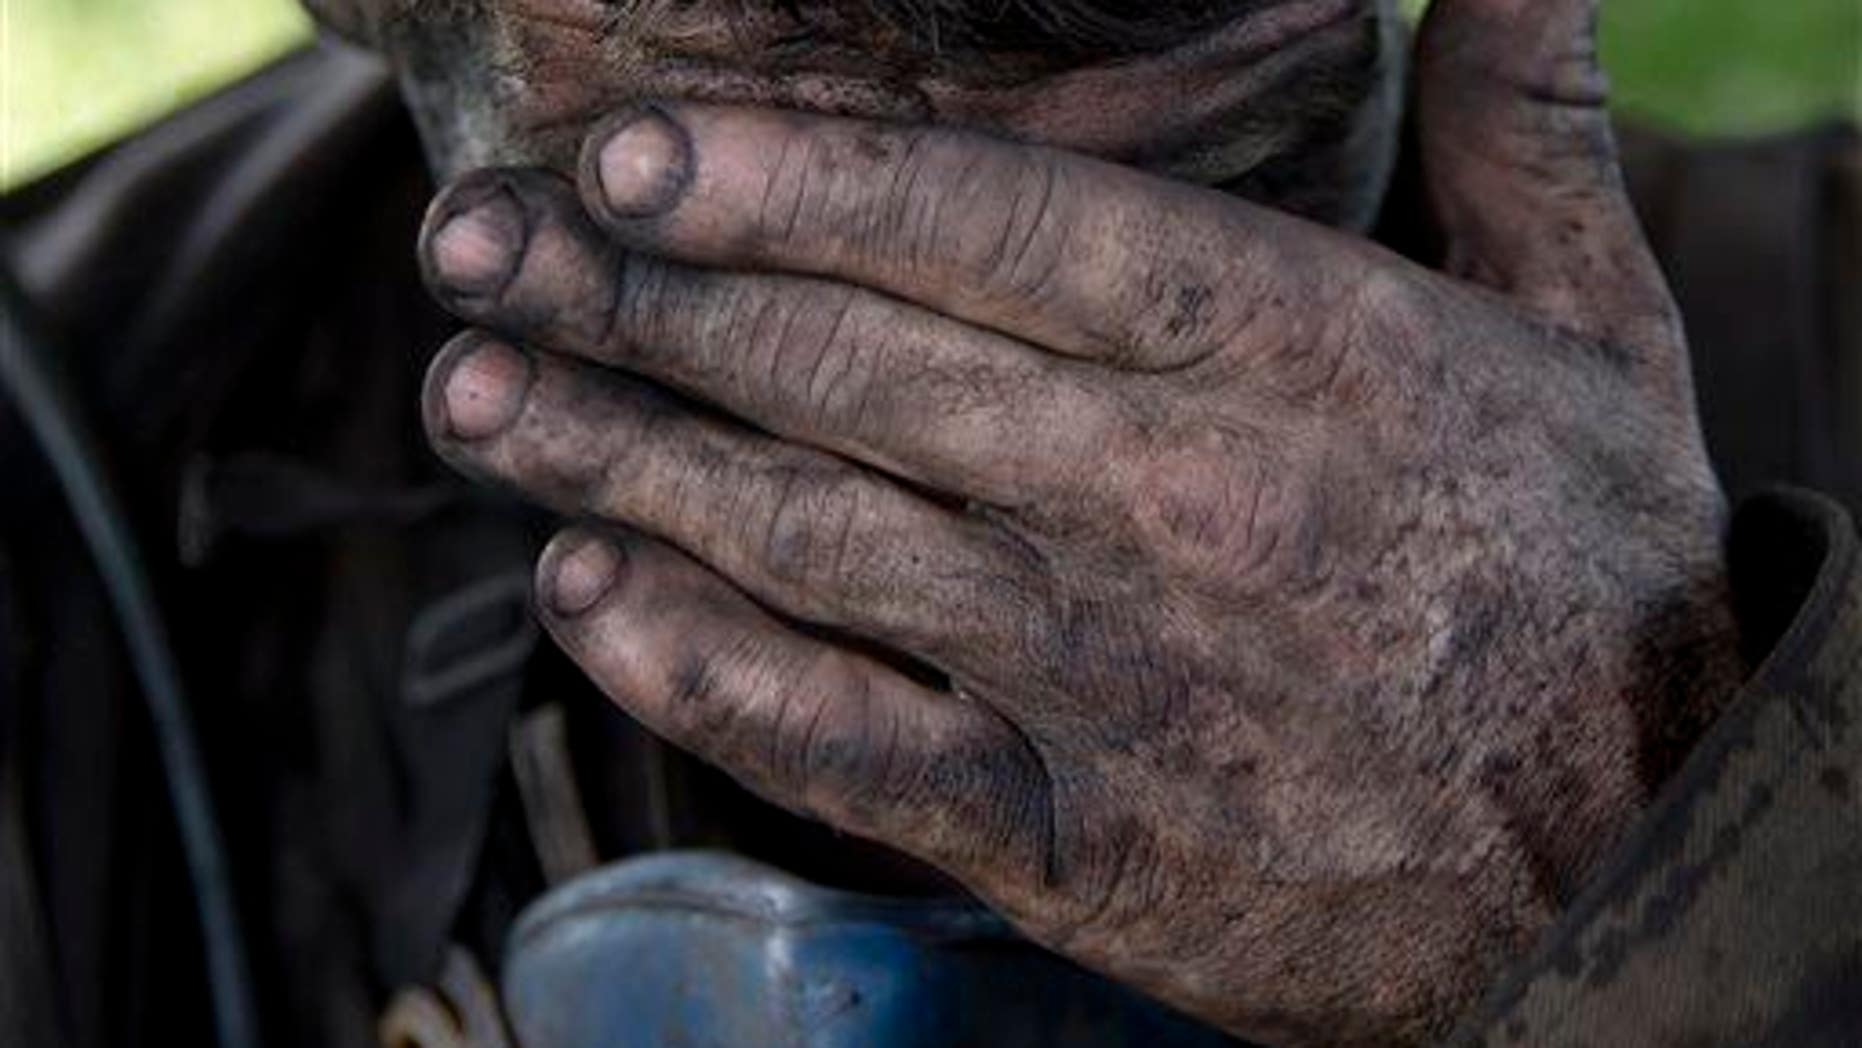 In this picture taken on May 20, 2014, a Ukrainian miner wipes his face after finishing his shift at a coal mine in Donetsk, Ukraine.